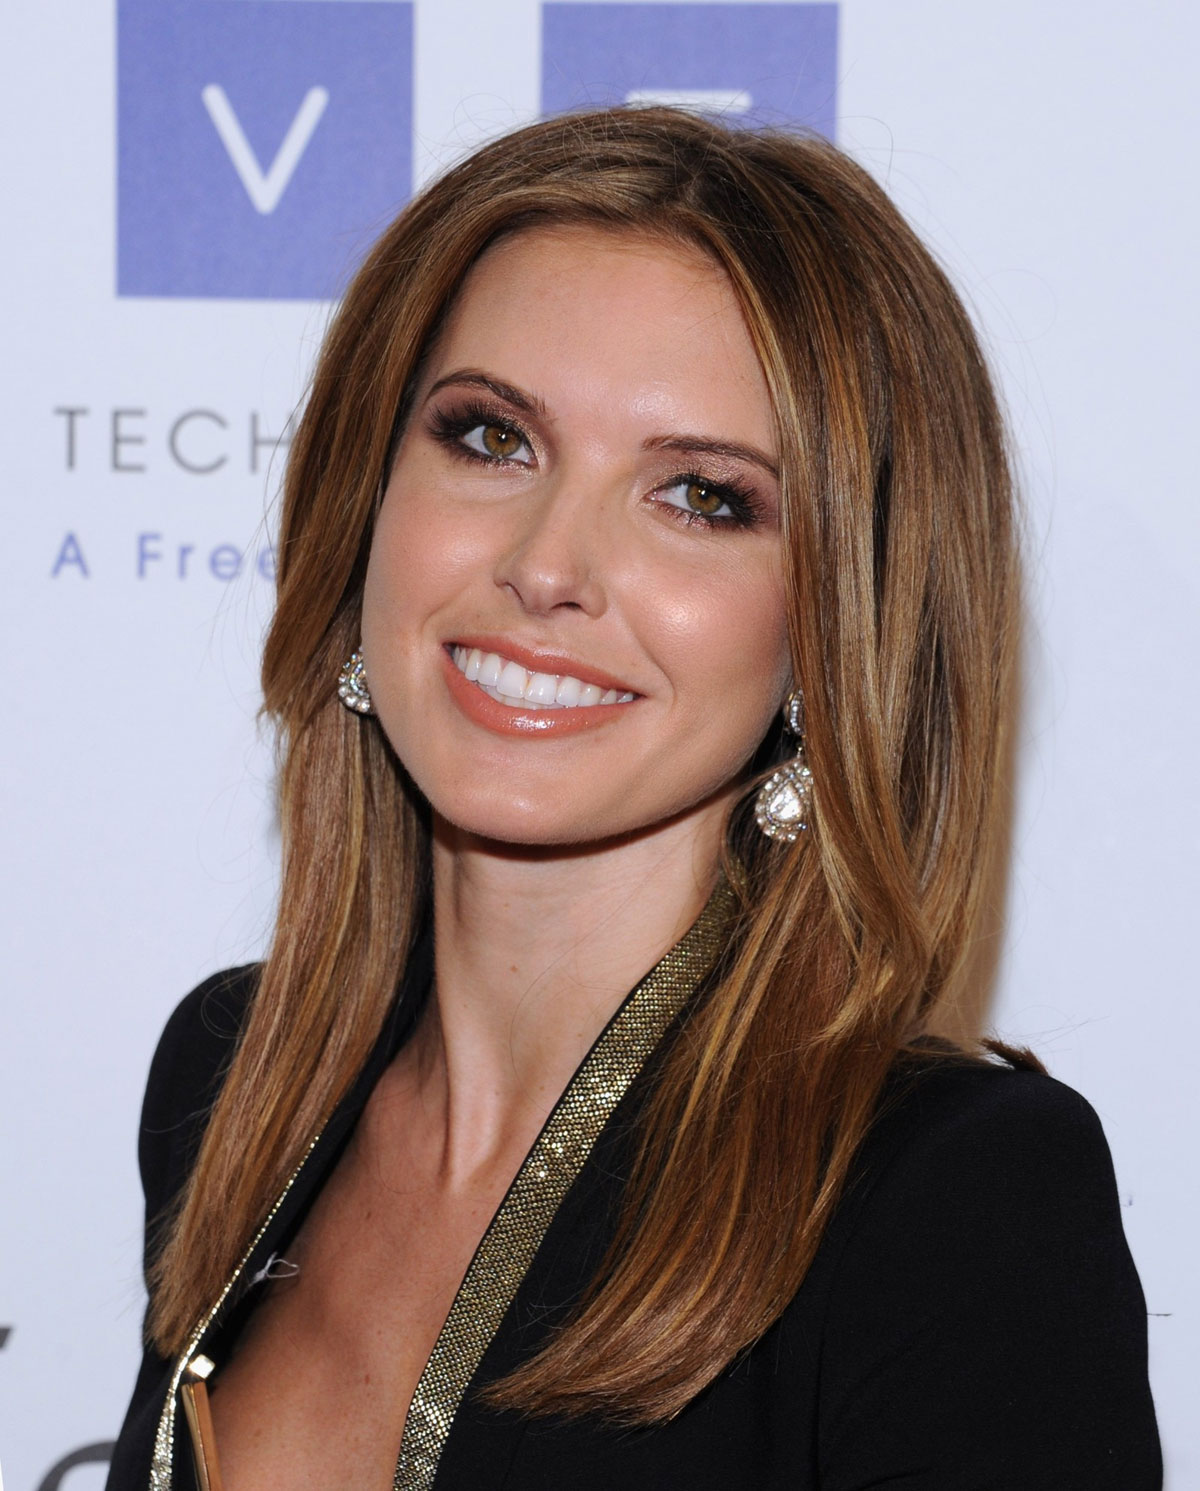 Audrina Patridge - Beautiful Photos